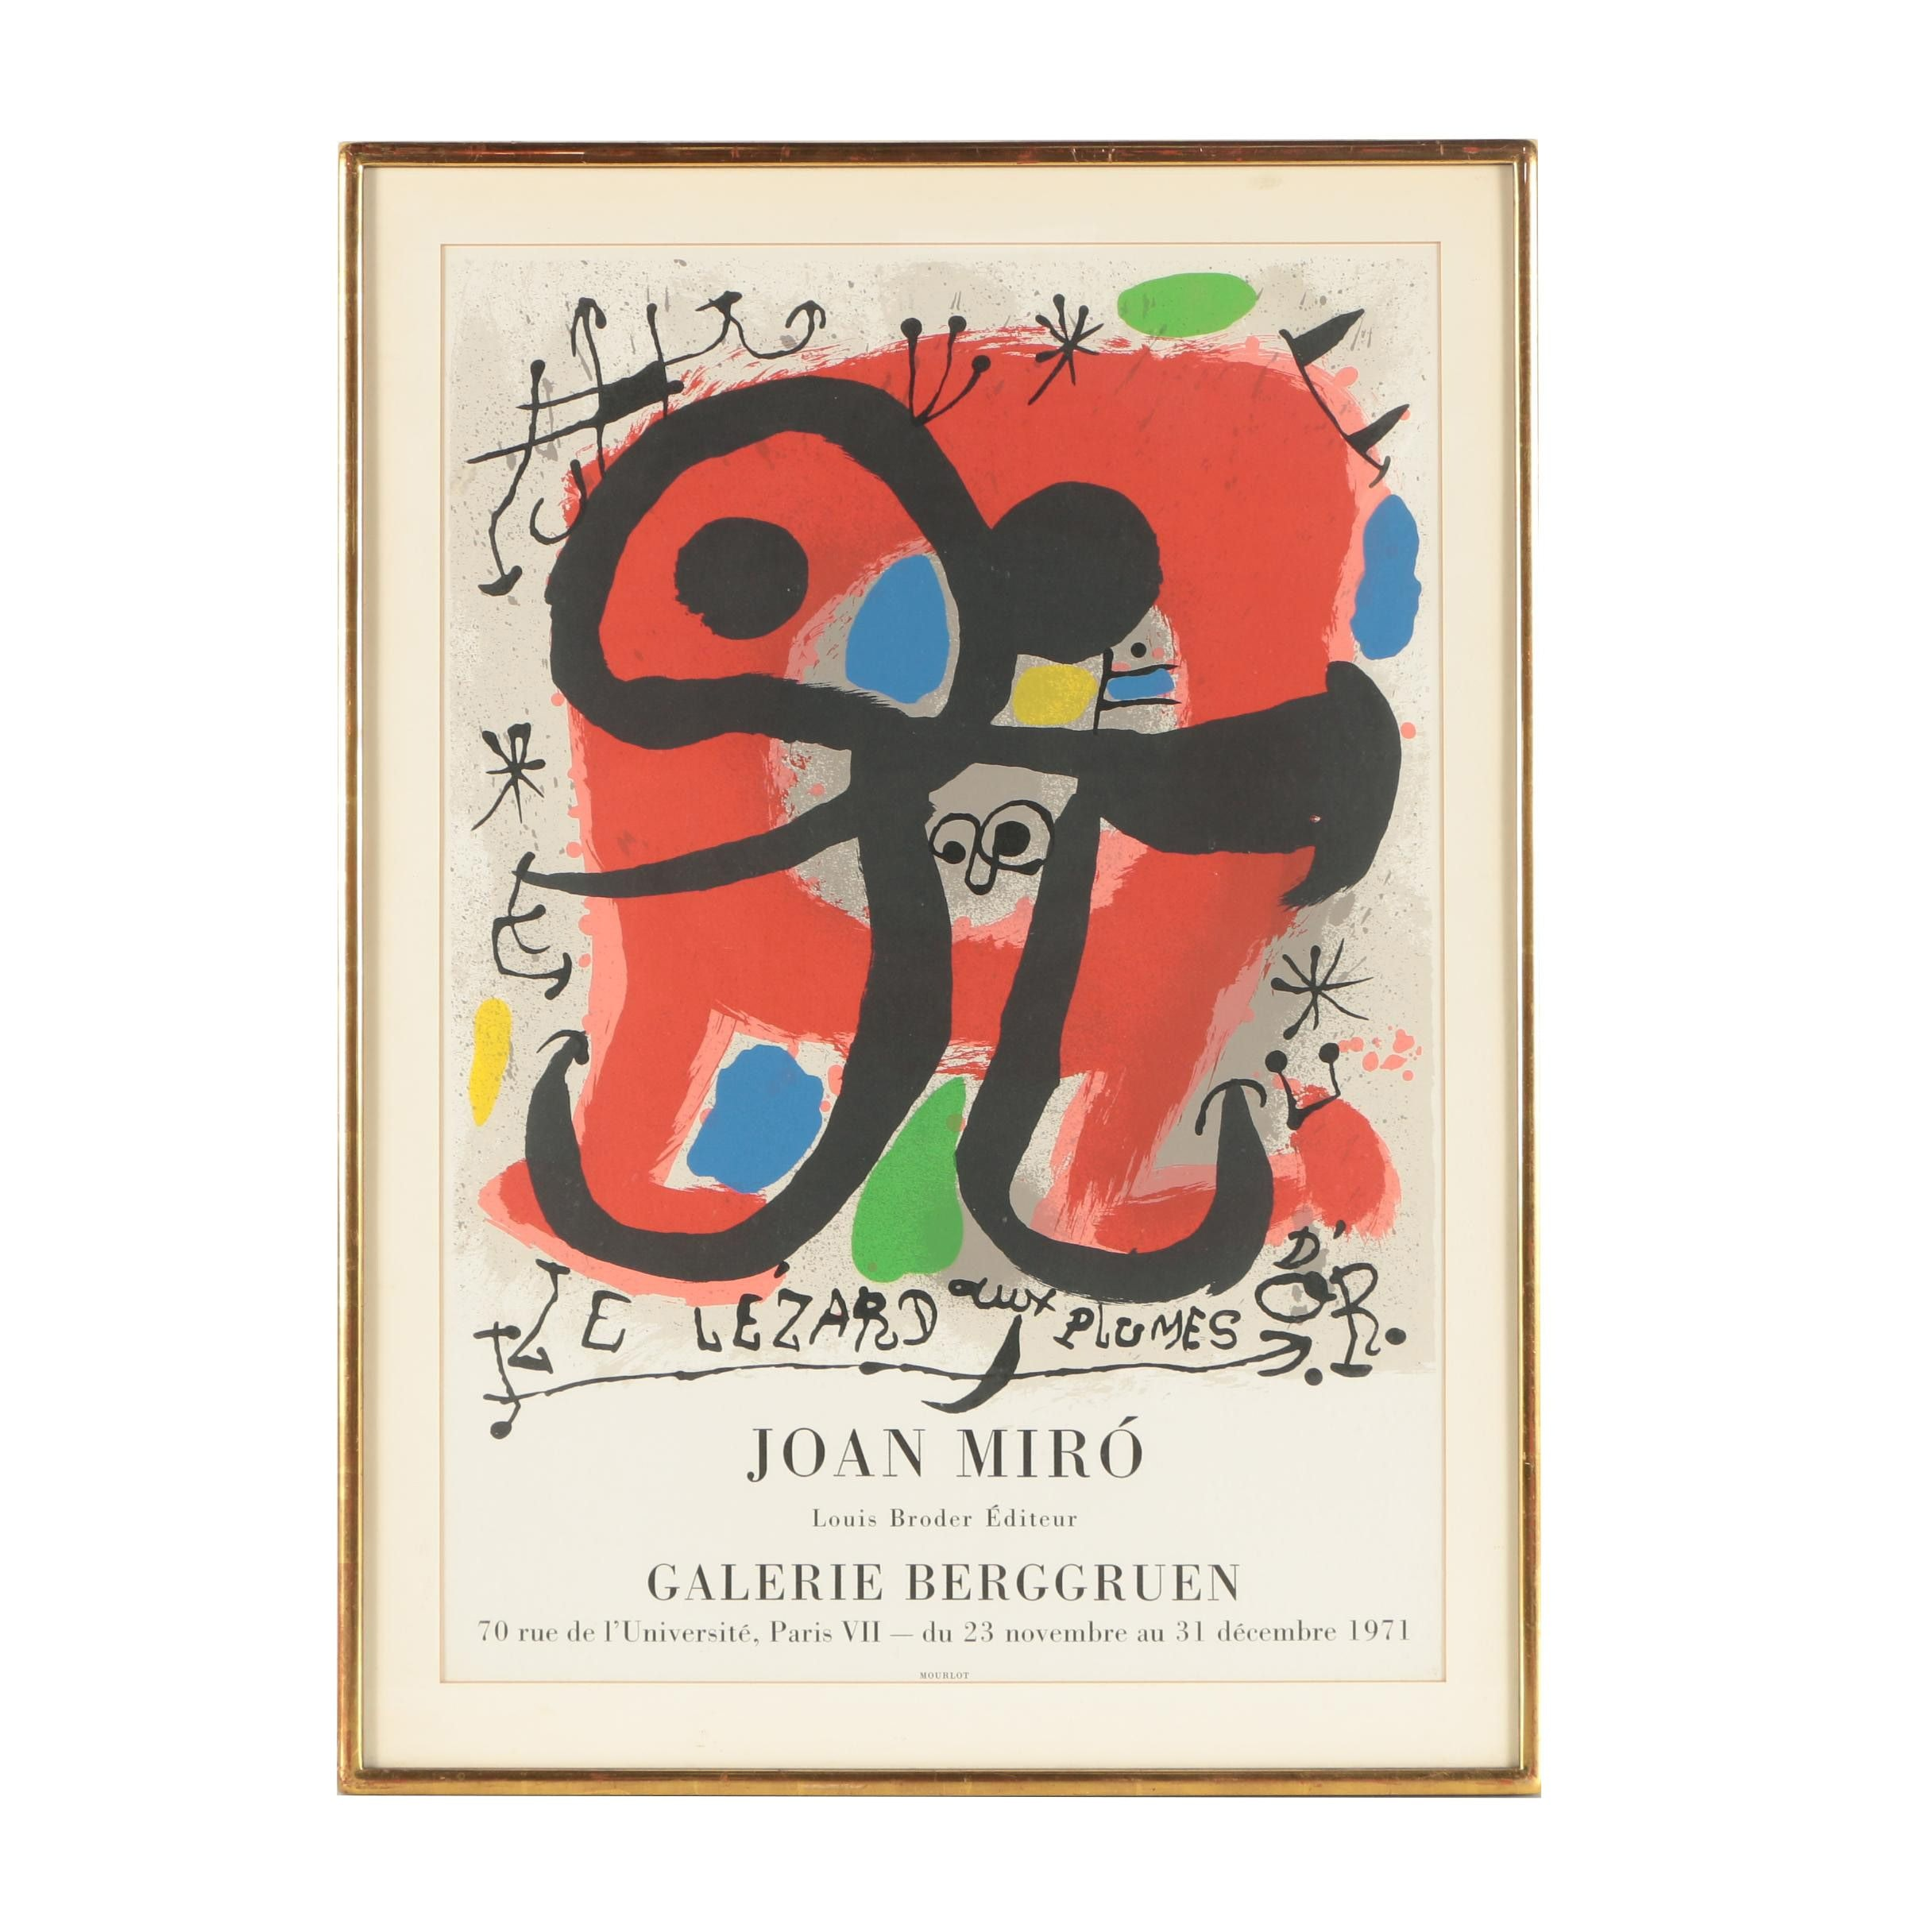 Joan Miró Lithographic Exhibition Poster